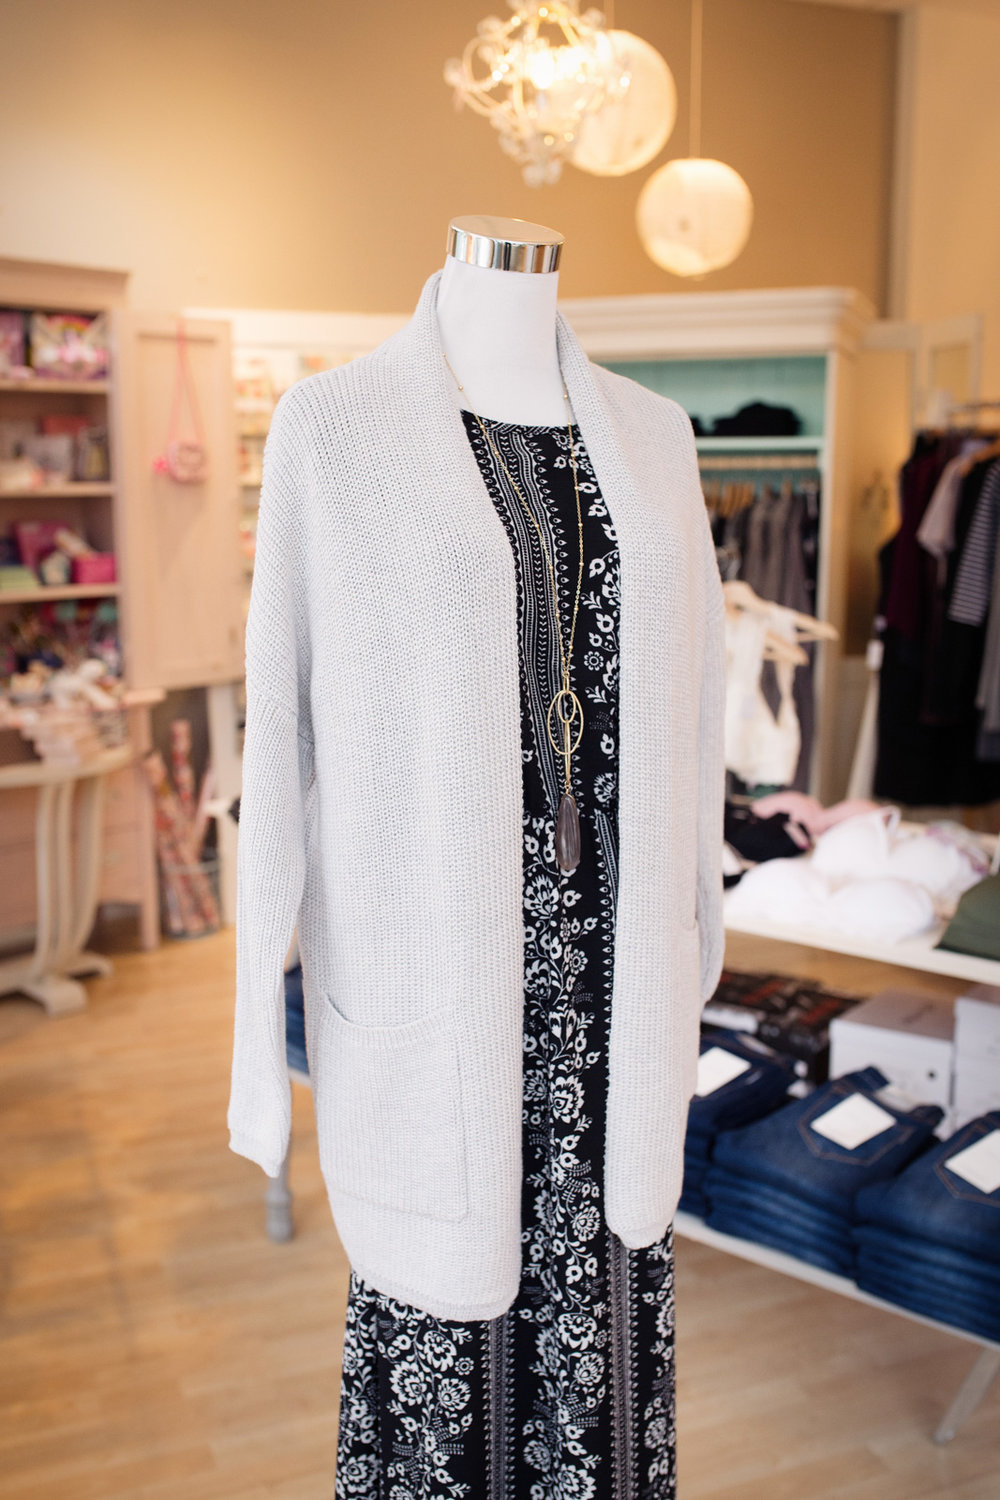 Meadow boutique seattle retail clothing store Yuliya Rae photography branding services-19.jpg